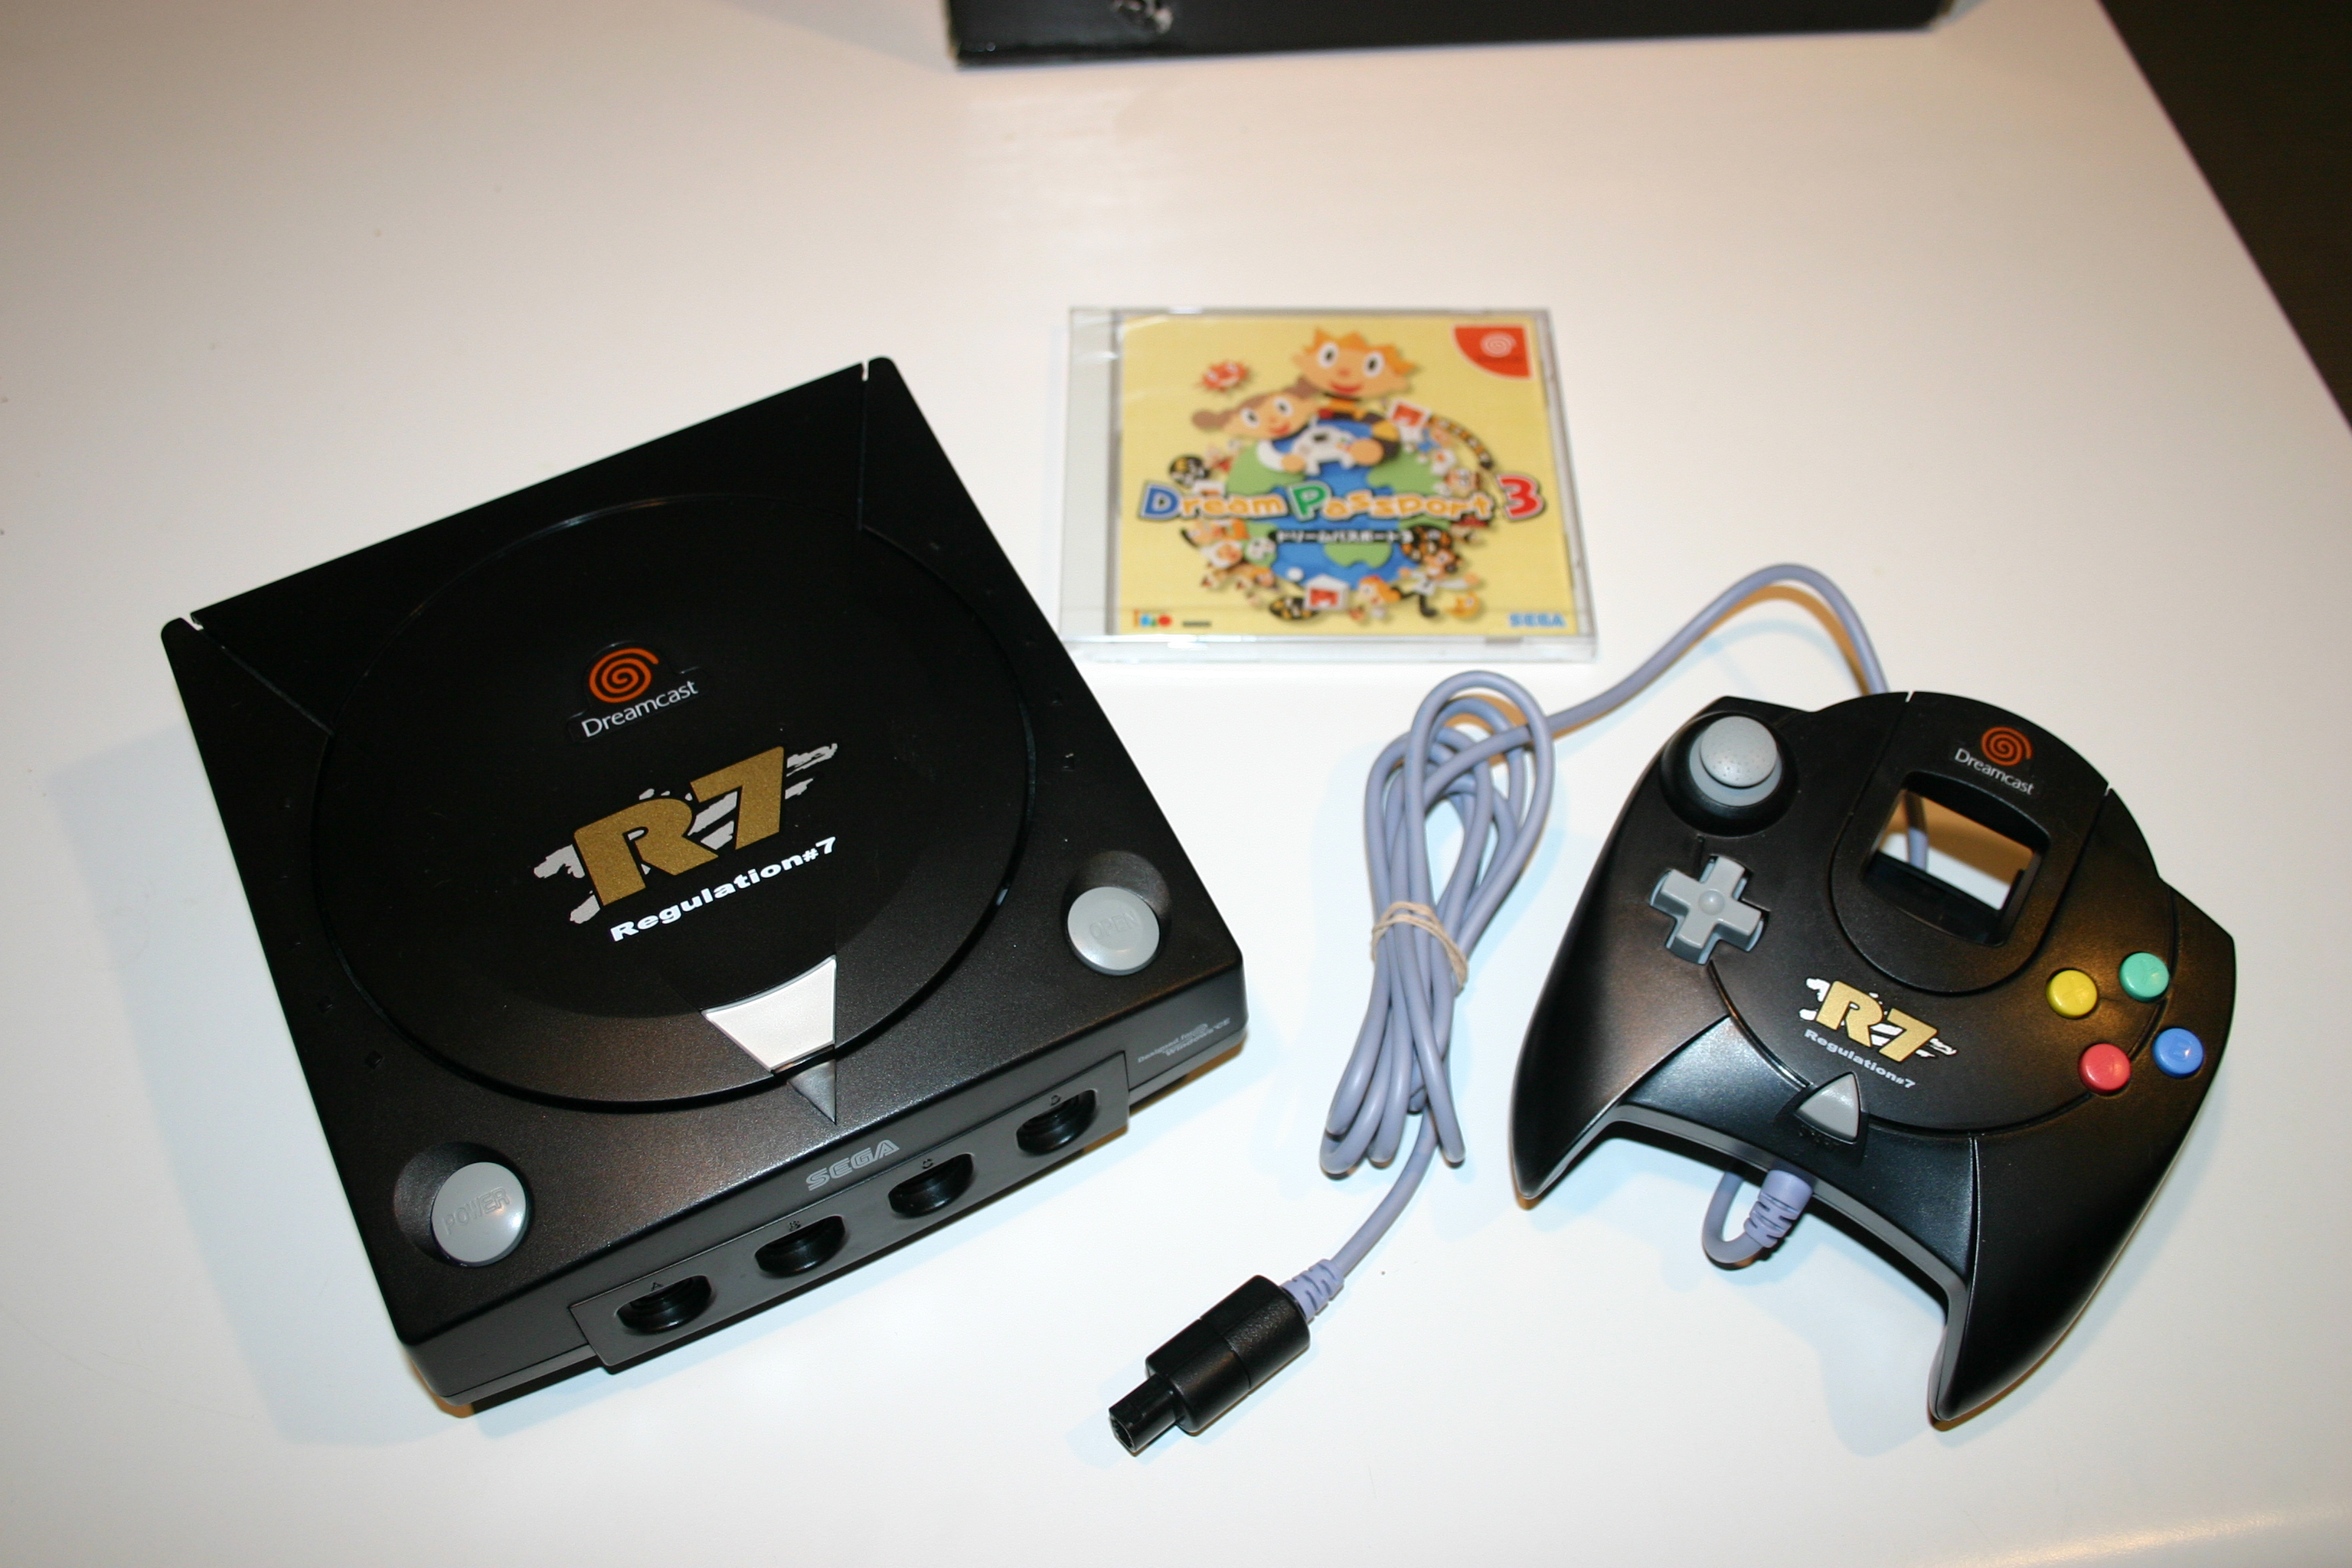 Regulation_7_Sega_Dreamcast_pulled_out_o